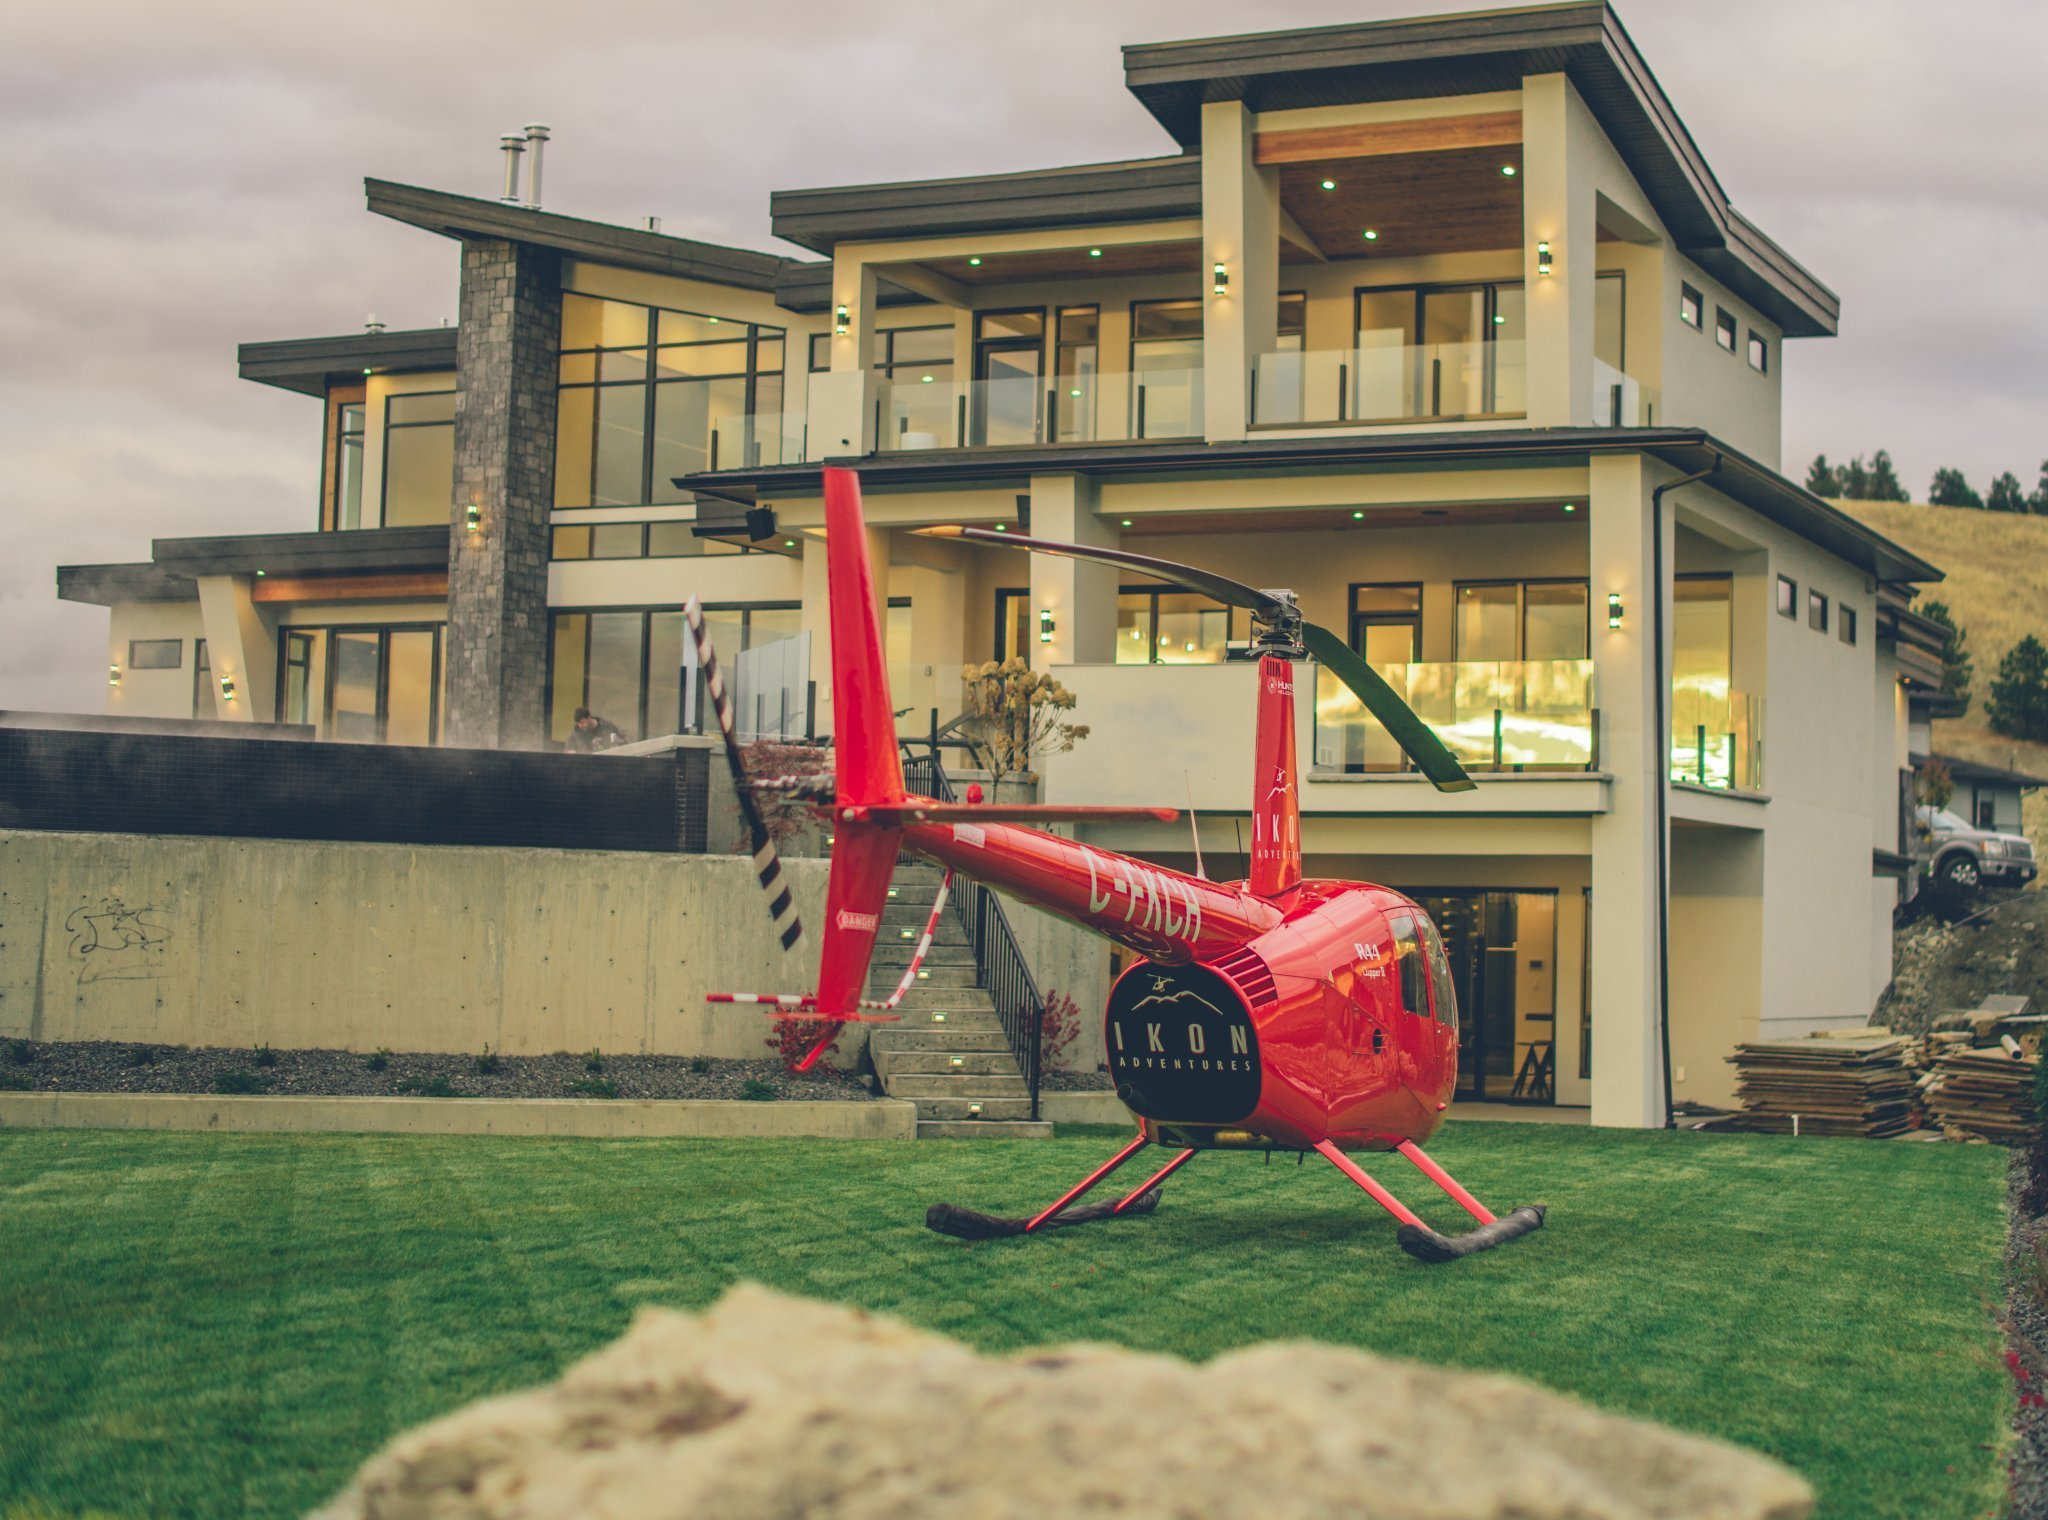 Hiilite | Marketing, SEO, Branding, Web & Graphic Design A helicopter from a local successful business parked in-front of one of the luxury homes in Kelowna, BC